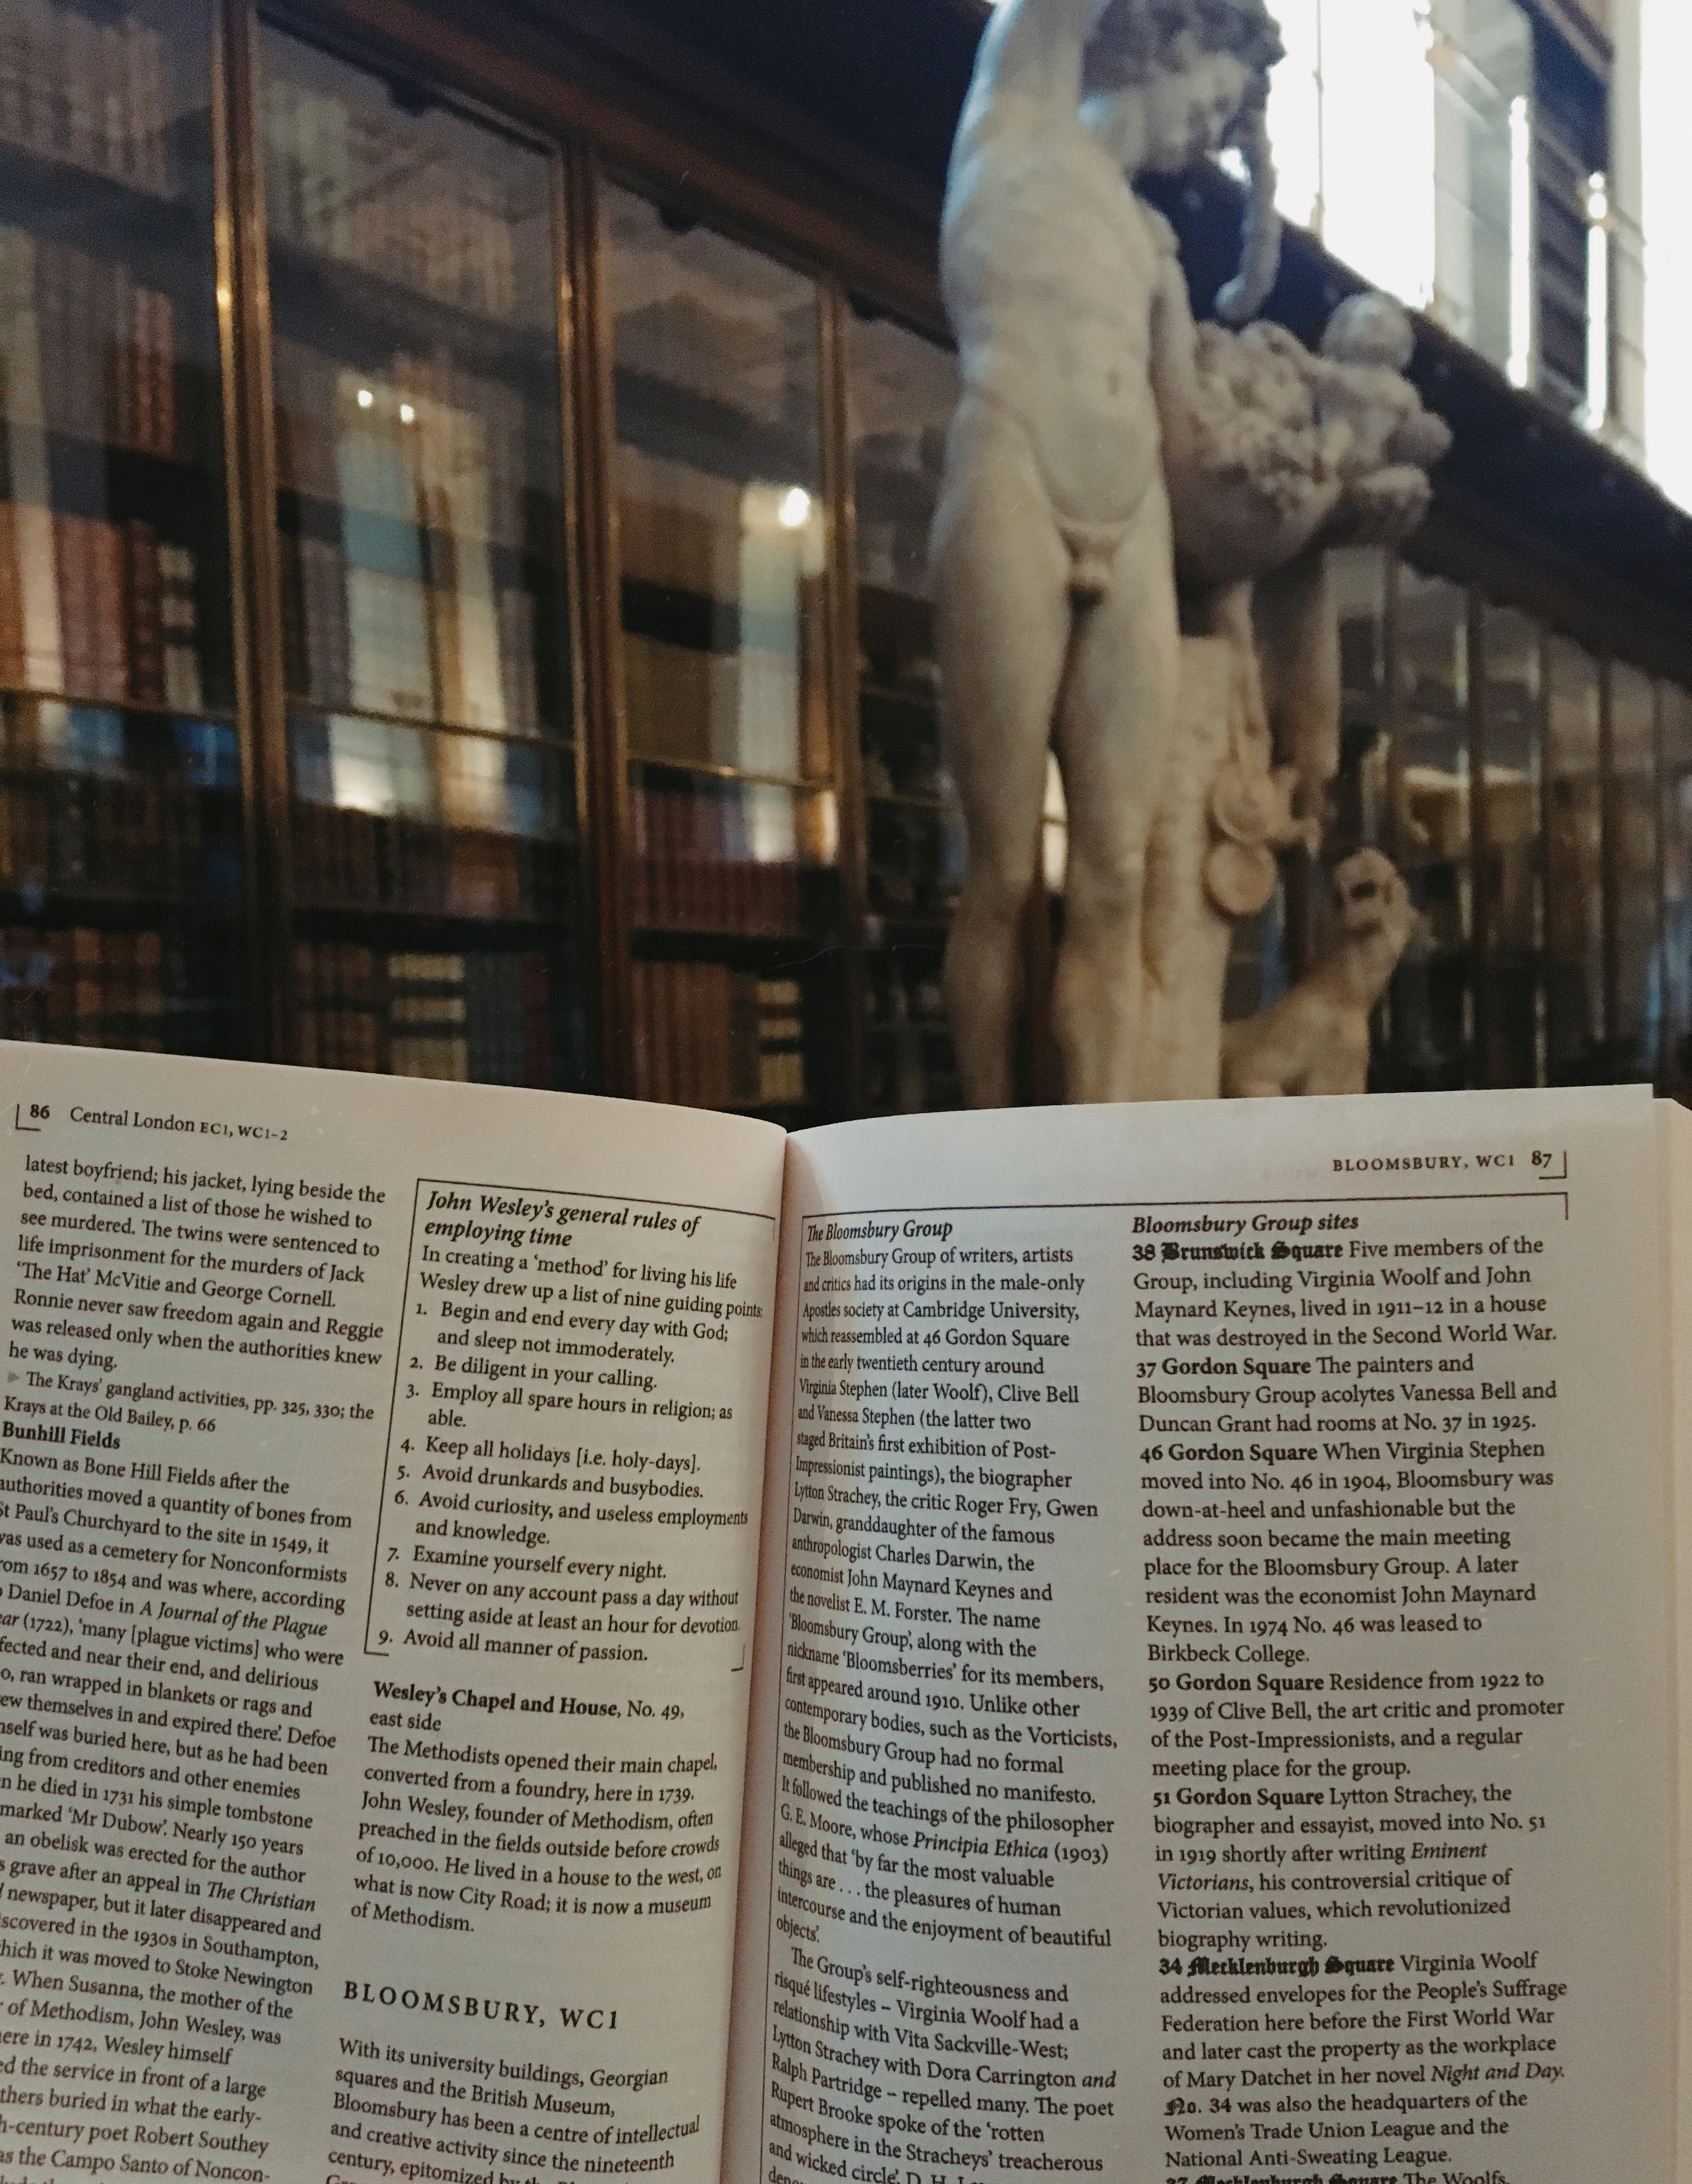 Reading in The British Museum's library.